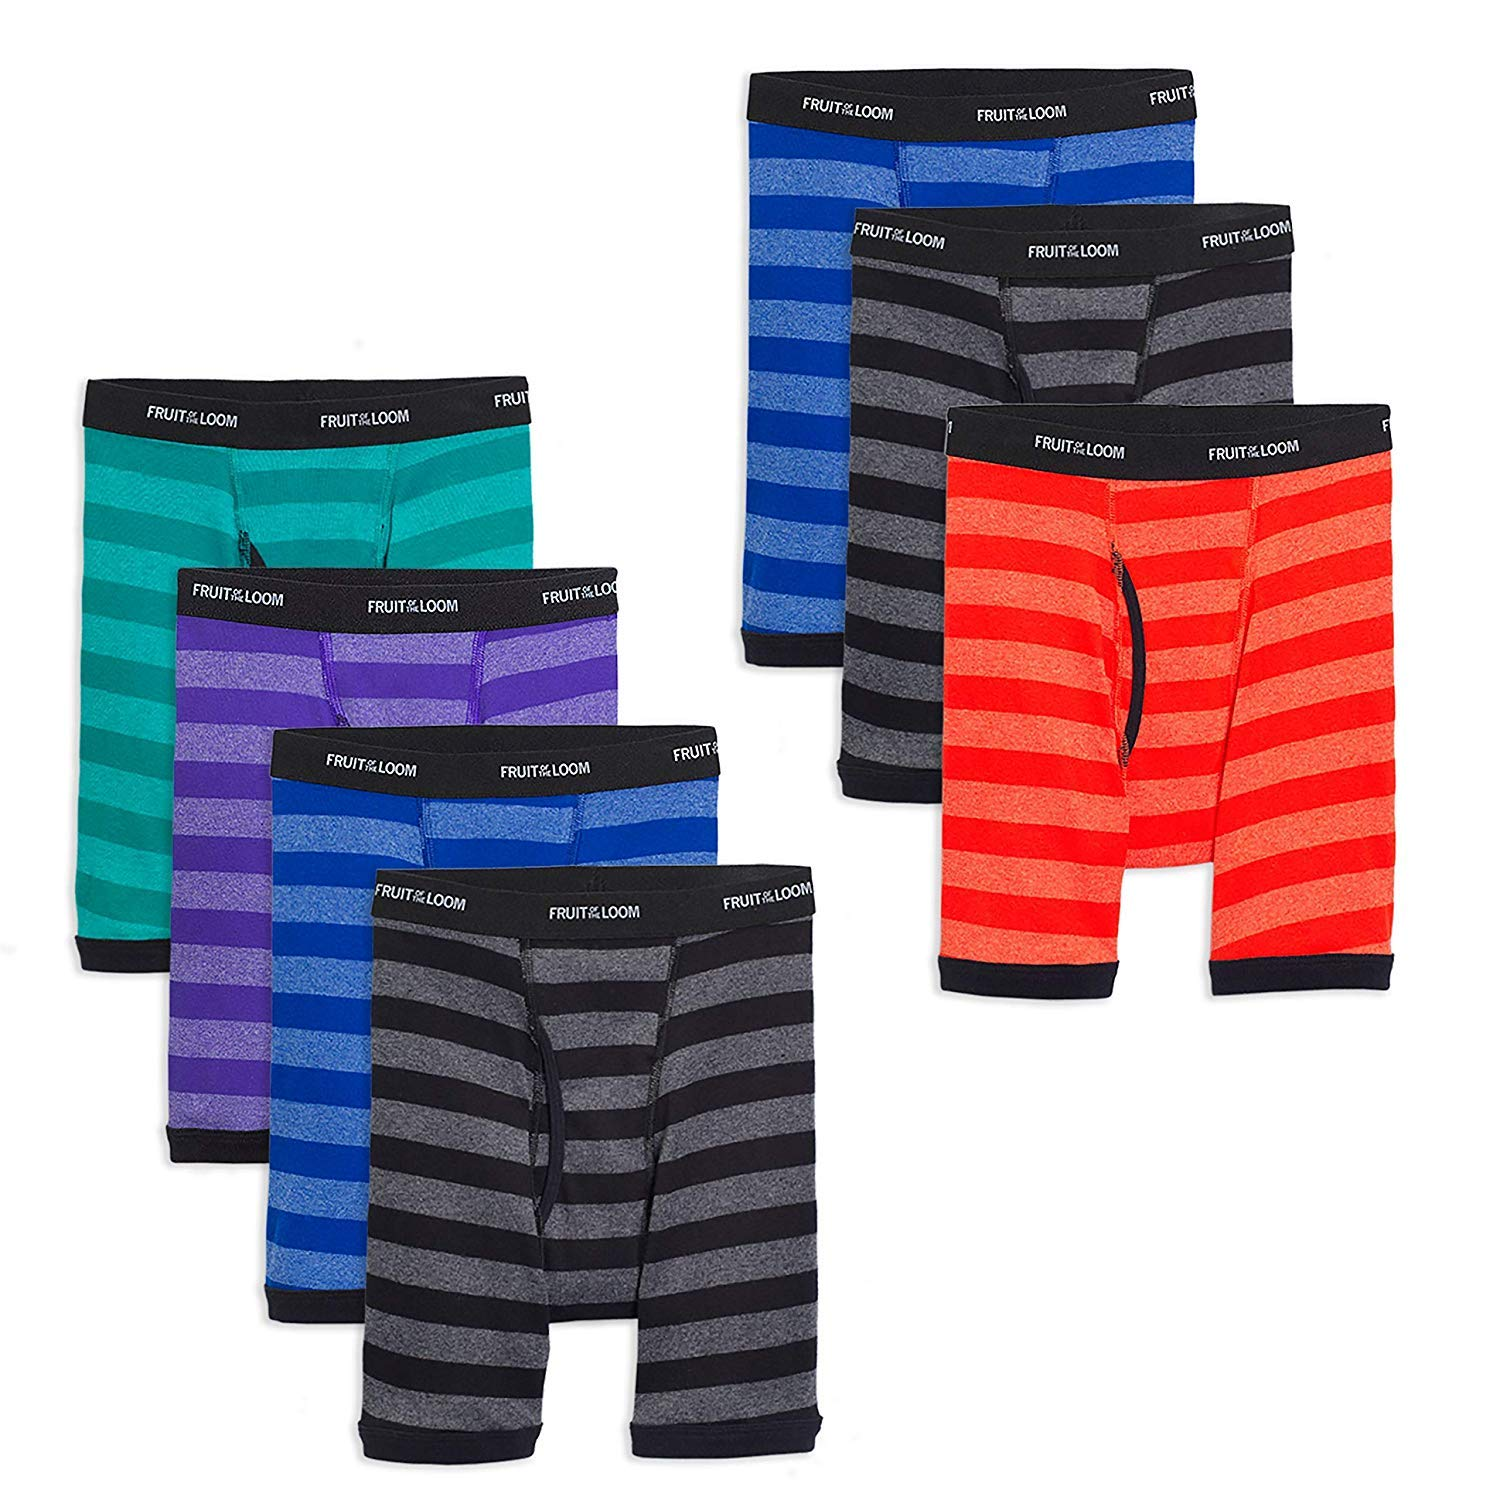 Fruit of the Loom Boys Cotton Boxer Brief Underwear (Medium (Waist (25-26)), Stripes - Assorted (Pack of 7))